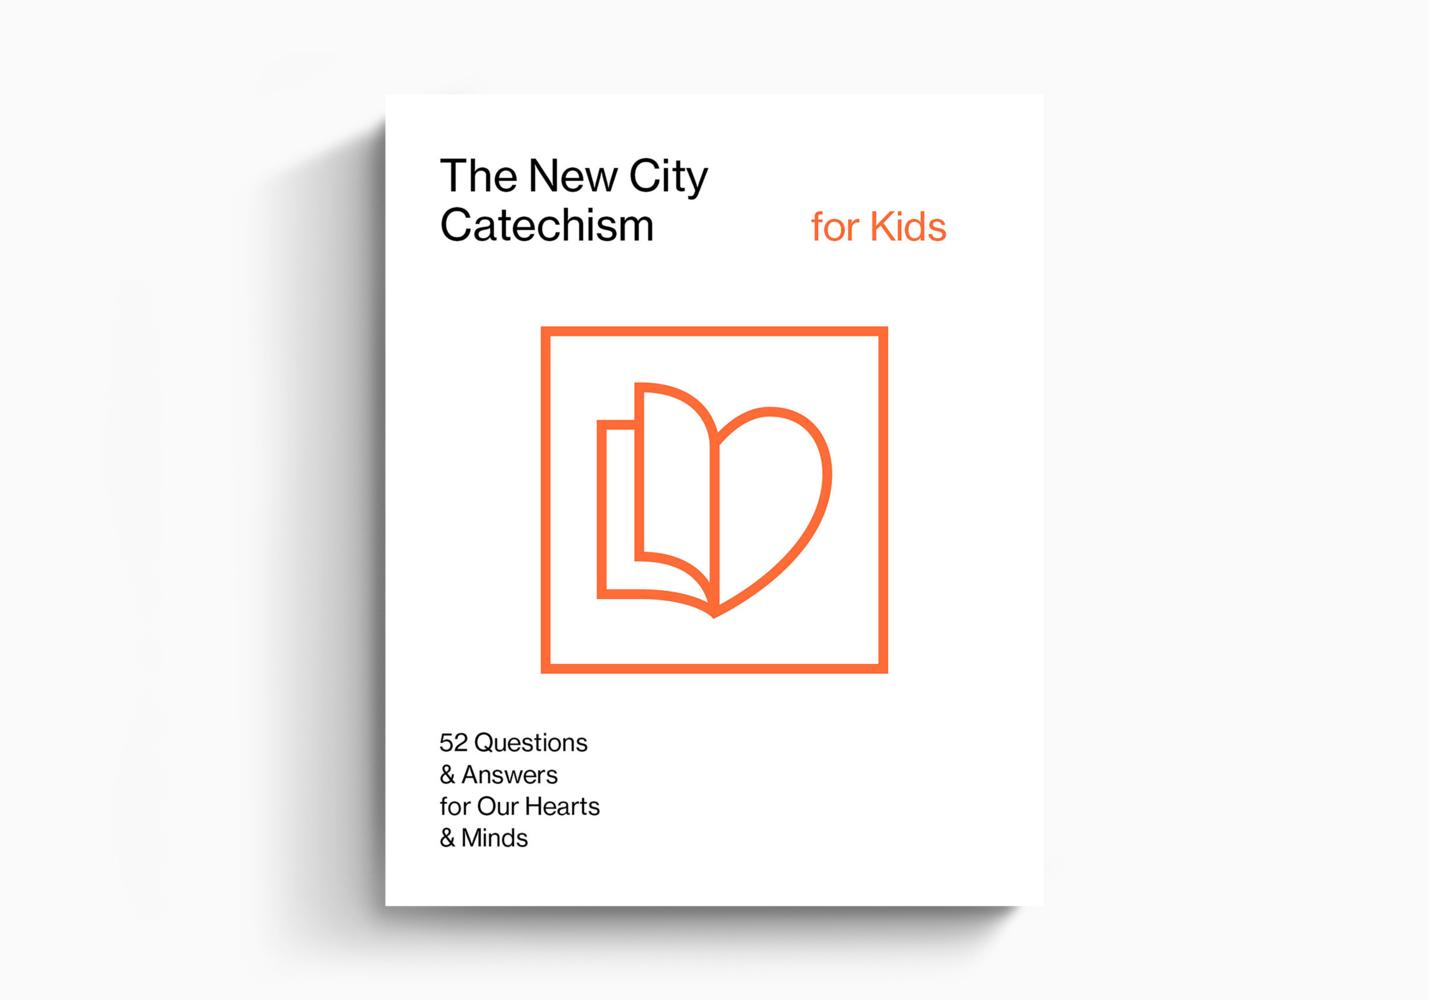 The New City Catechism for Kids image